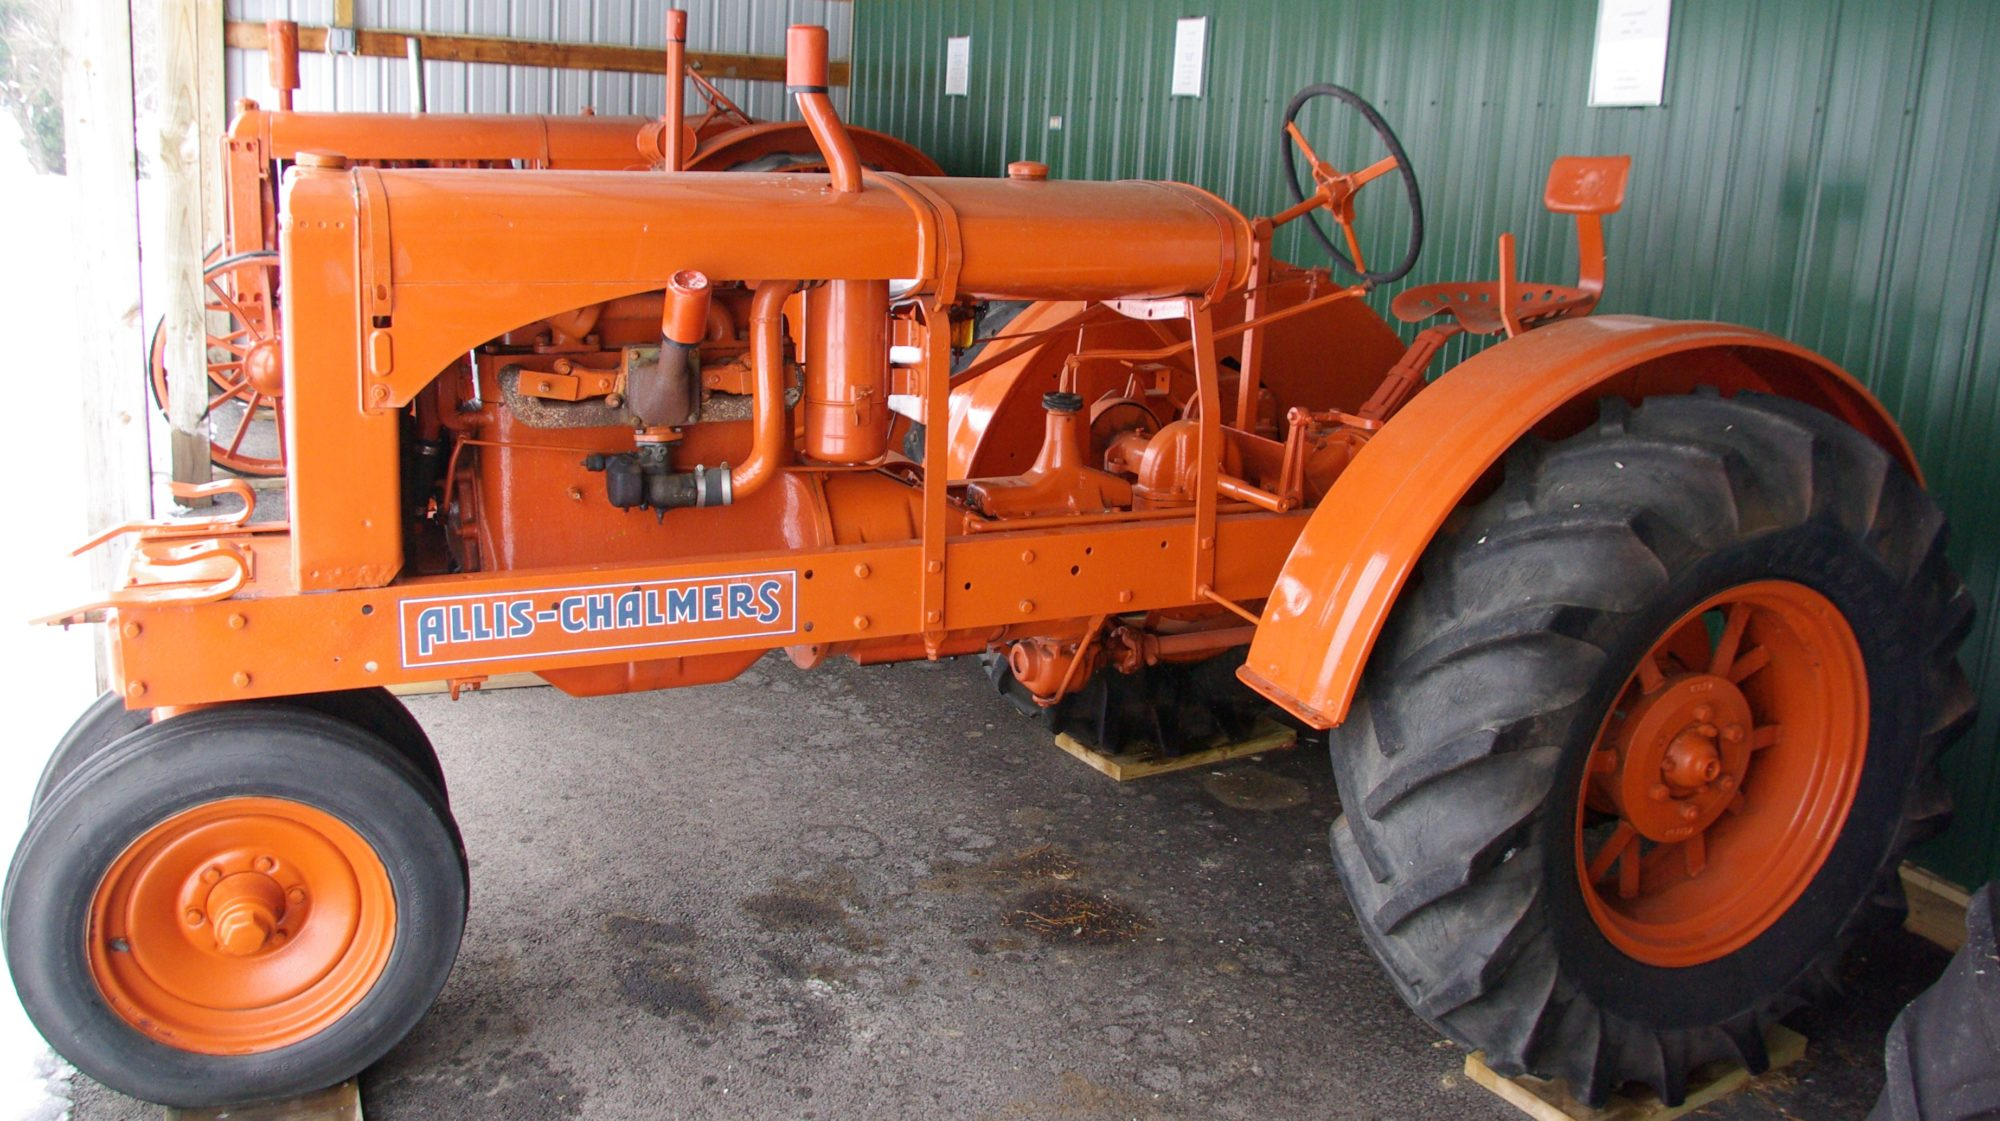 Allis-chalmers wc